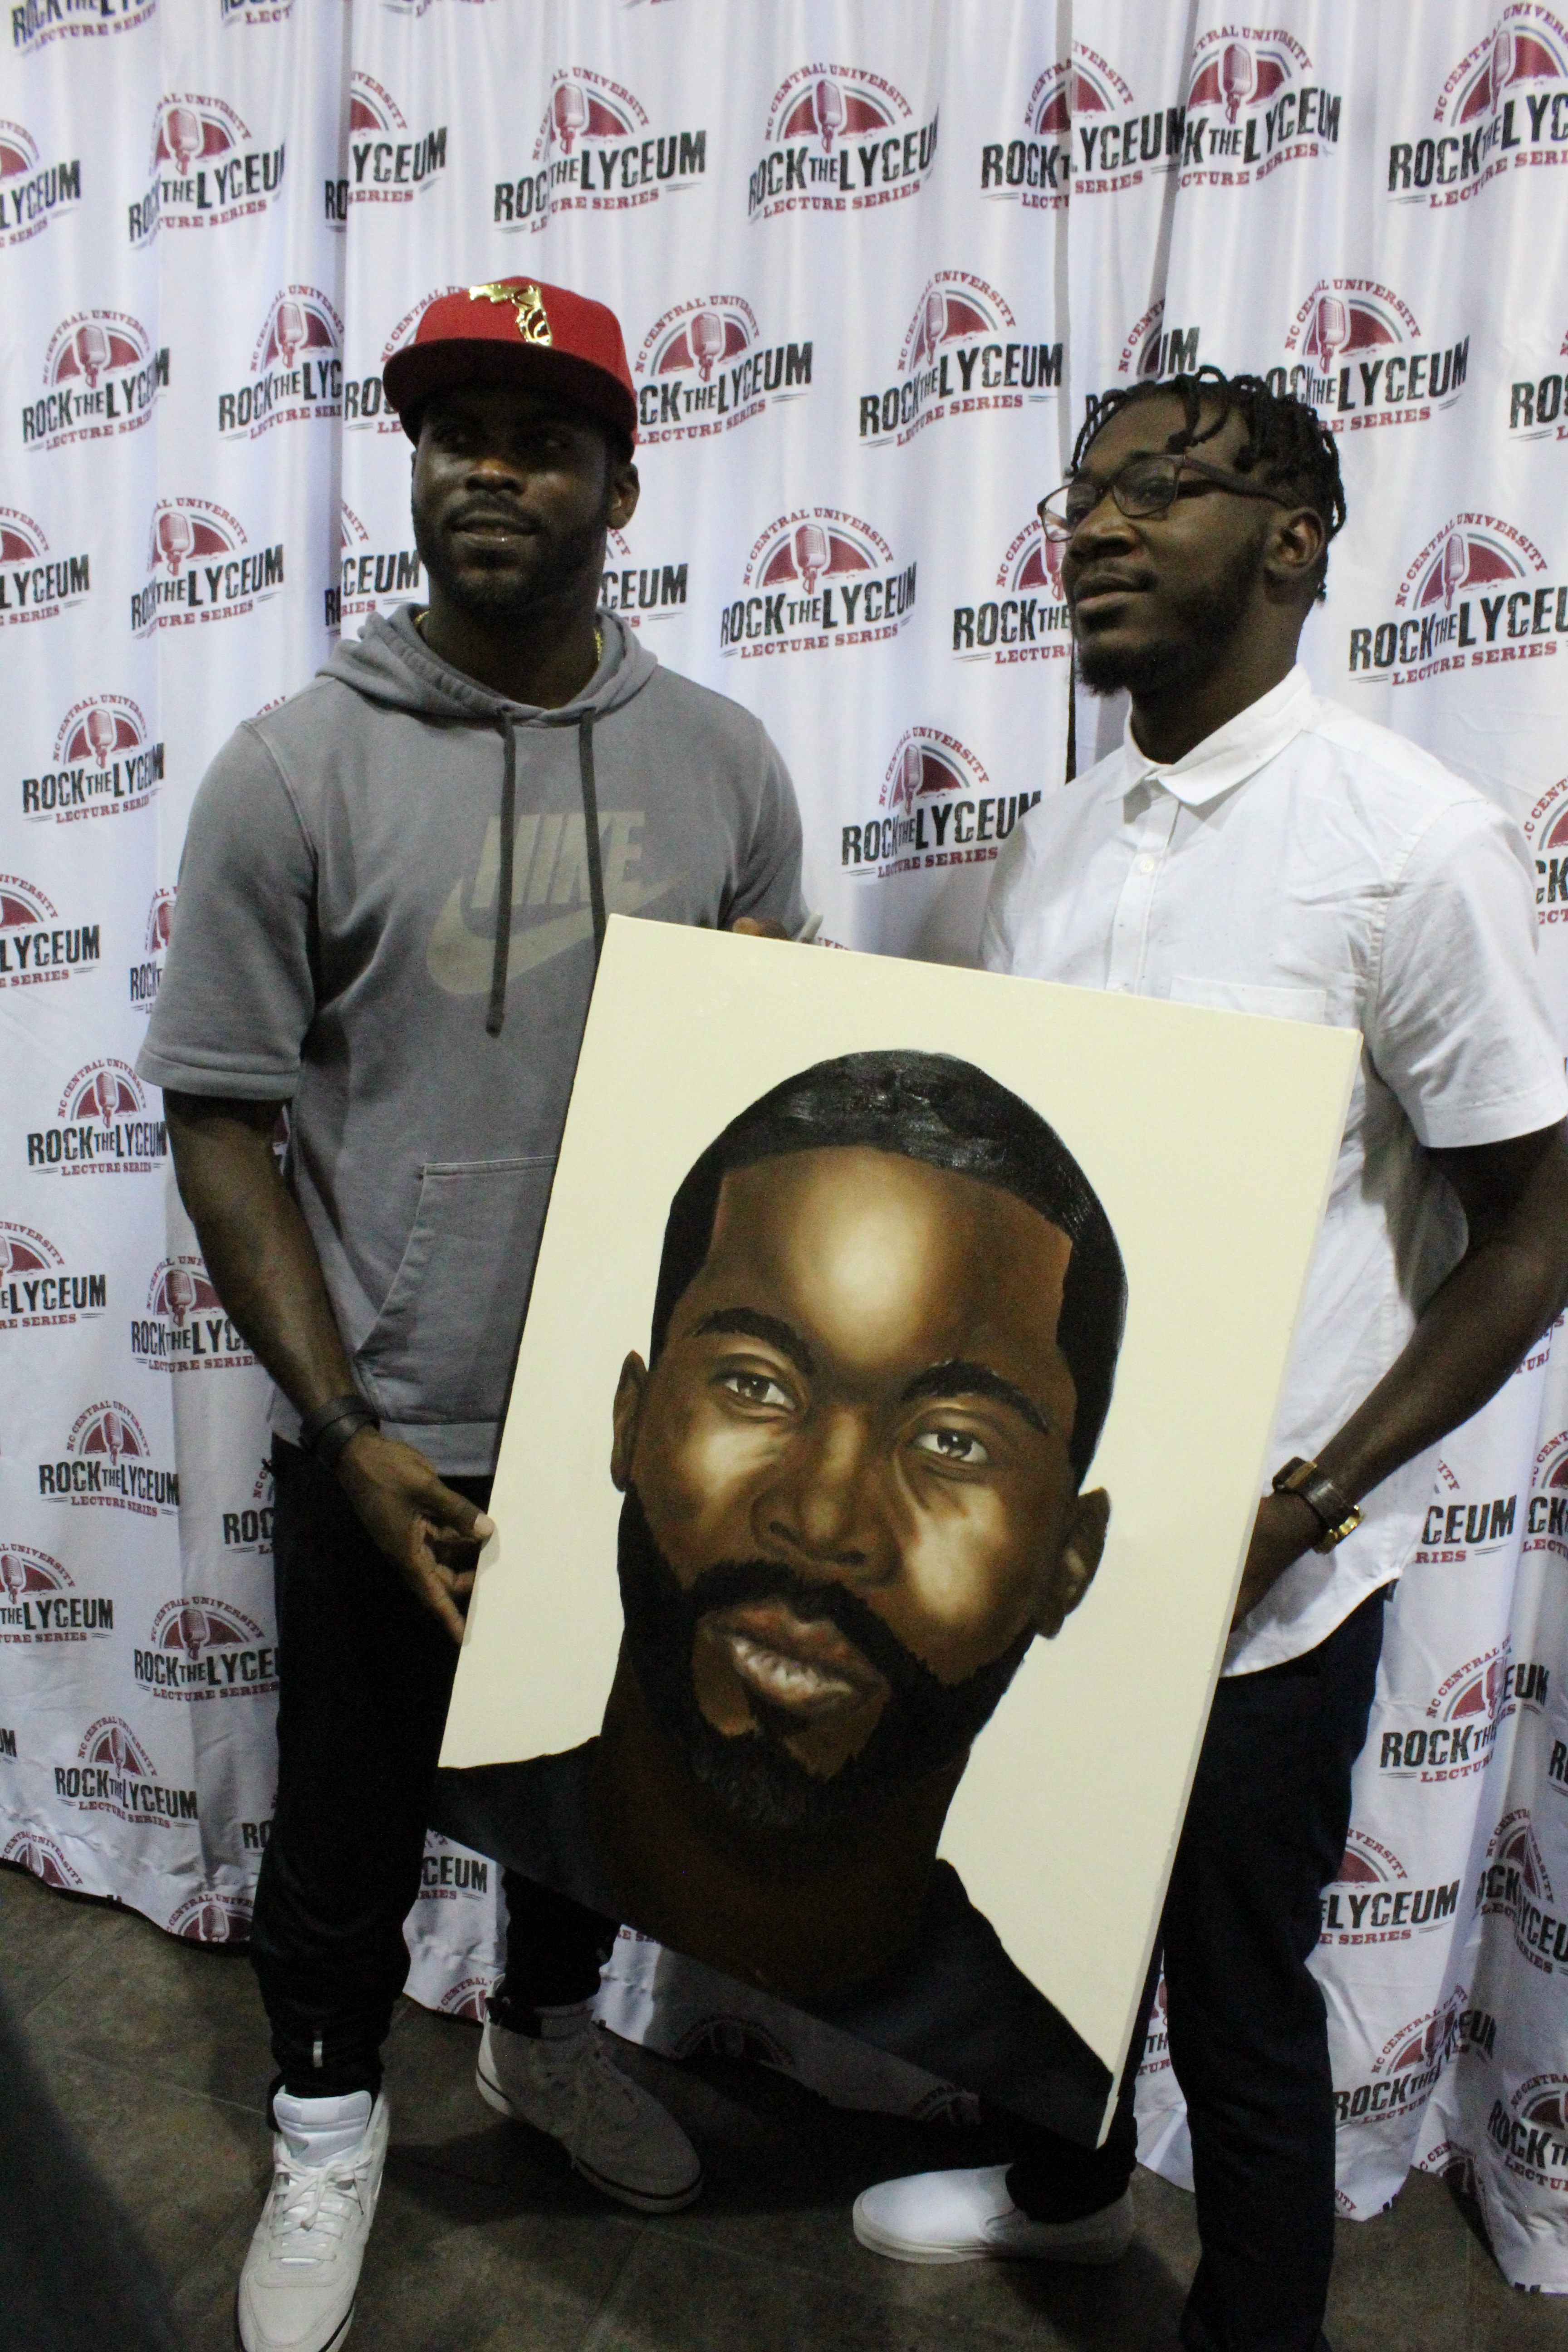 Mike Vick at NCCU